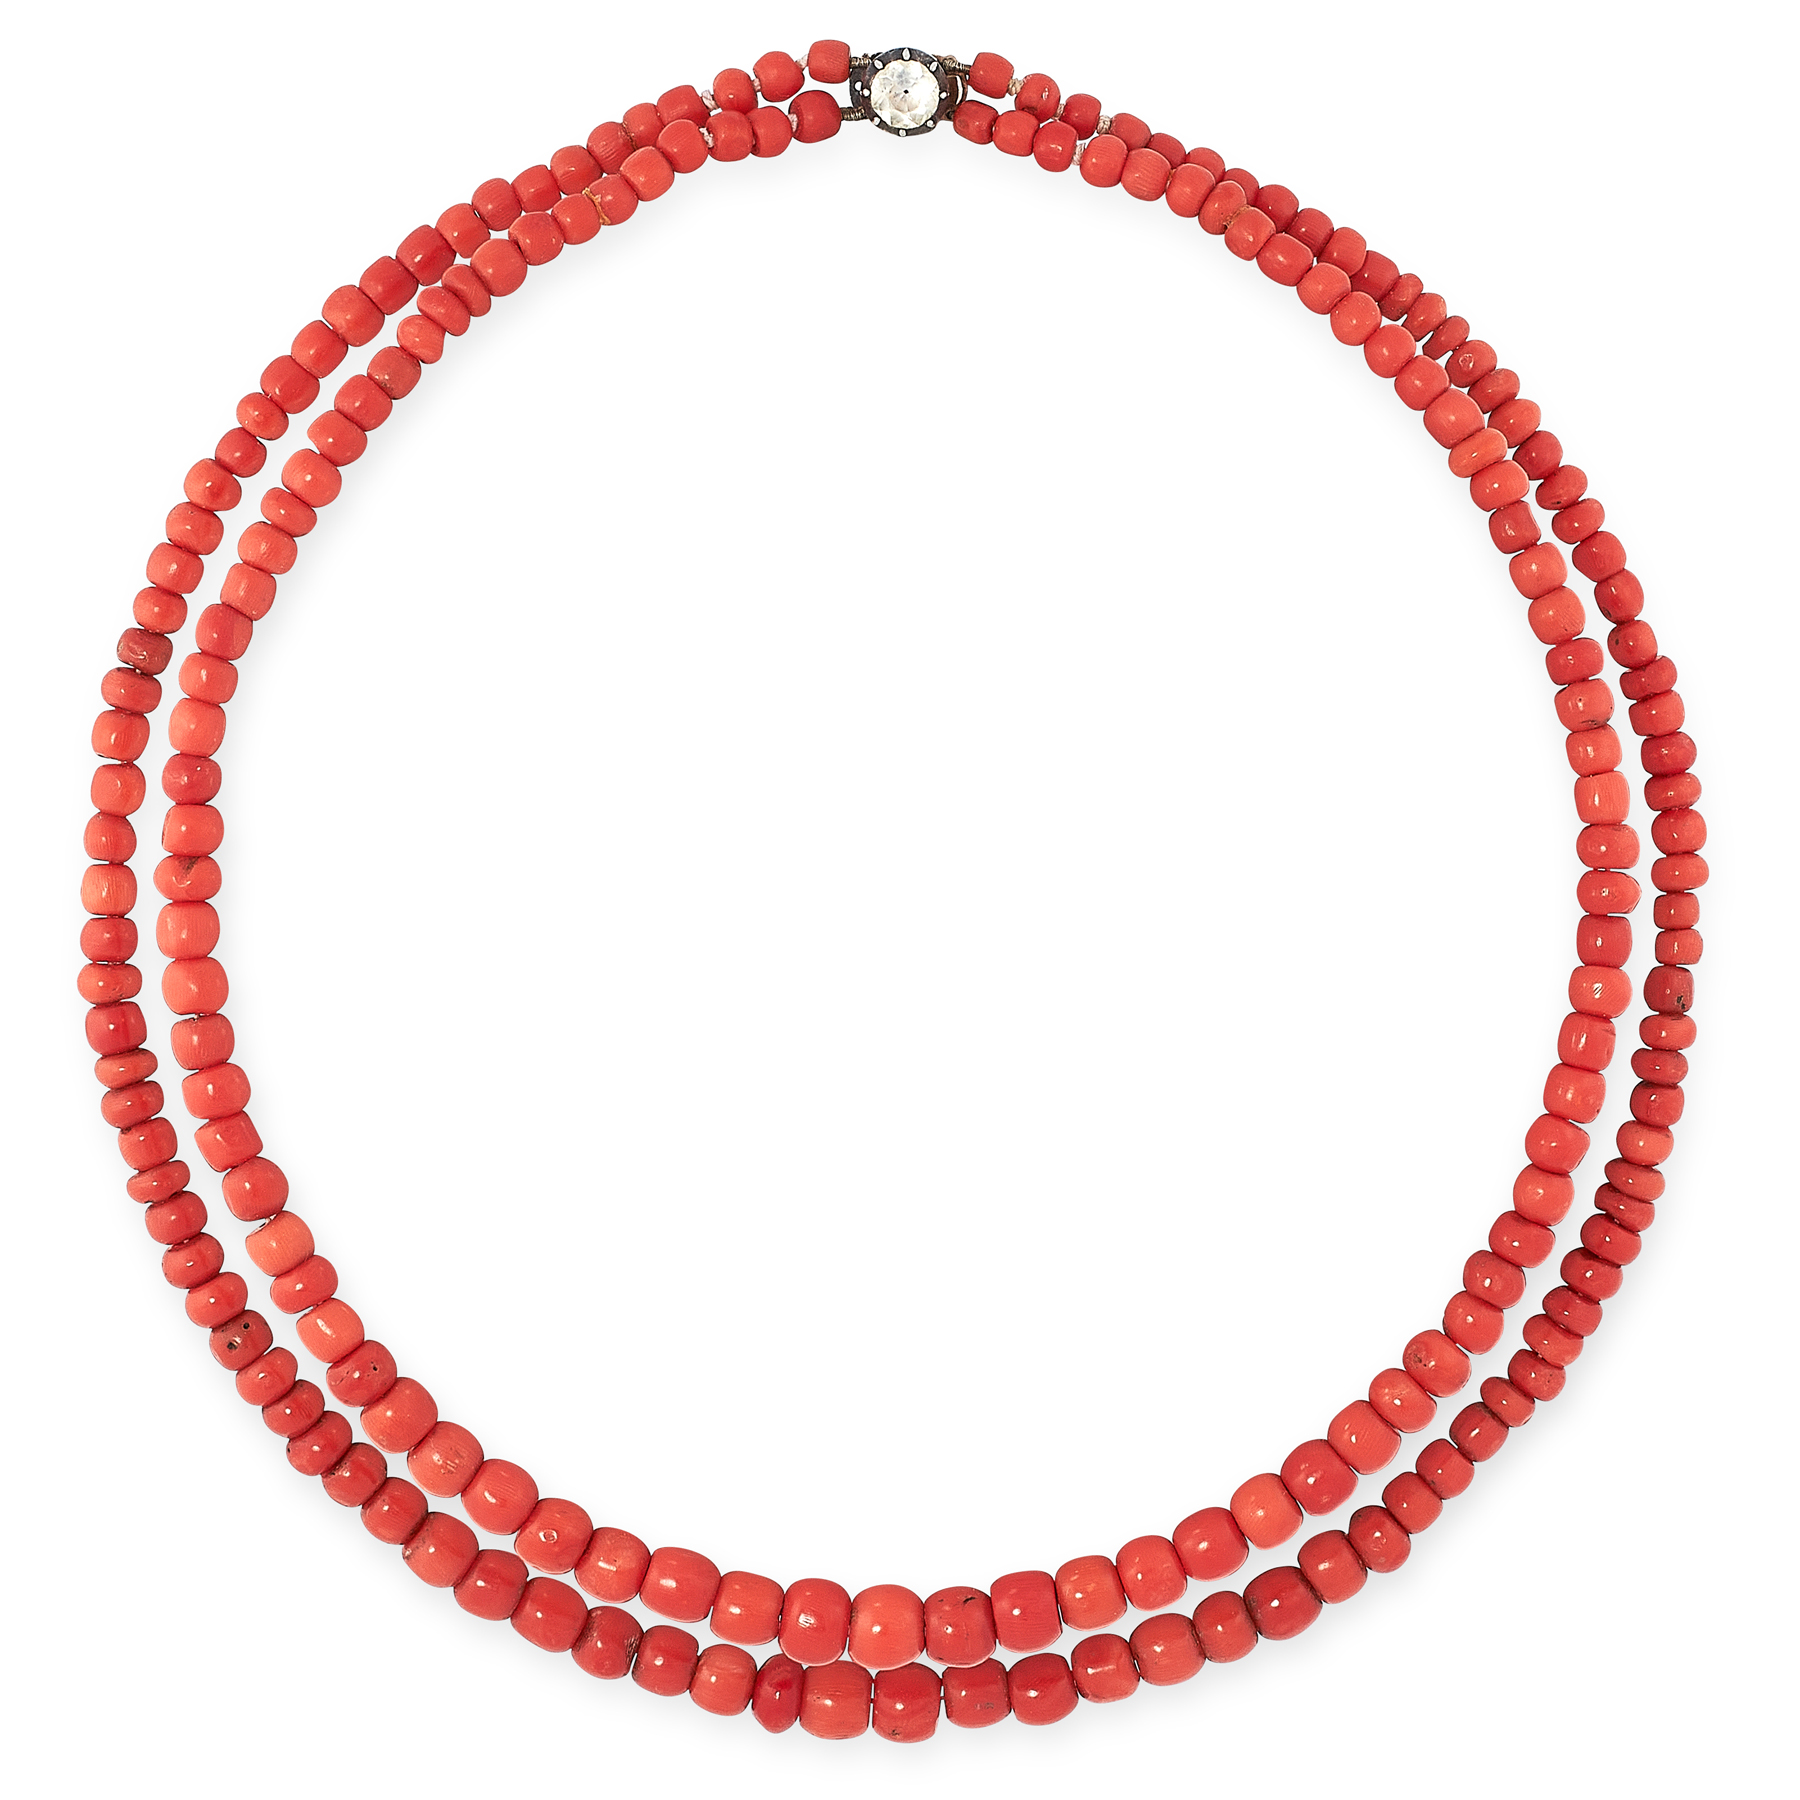 AN ANTIQUE TWO ROW CORAL AND PASTE NECKLACE comprising two graduated rows of polished coral beads